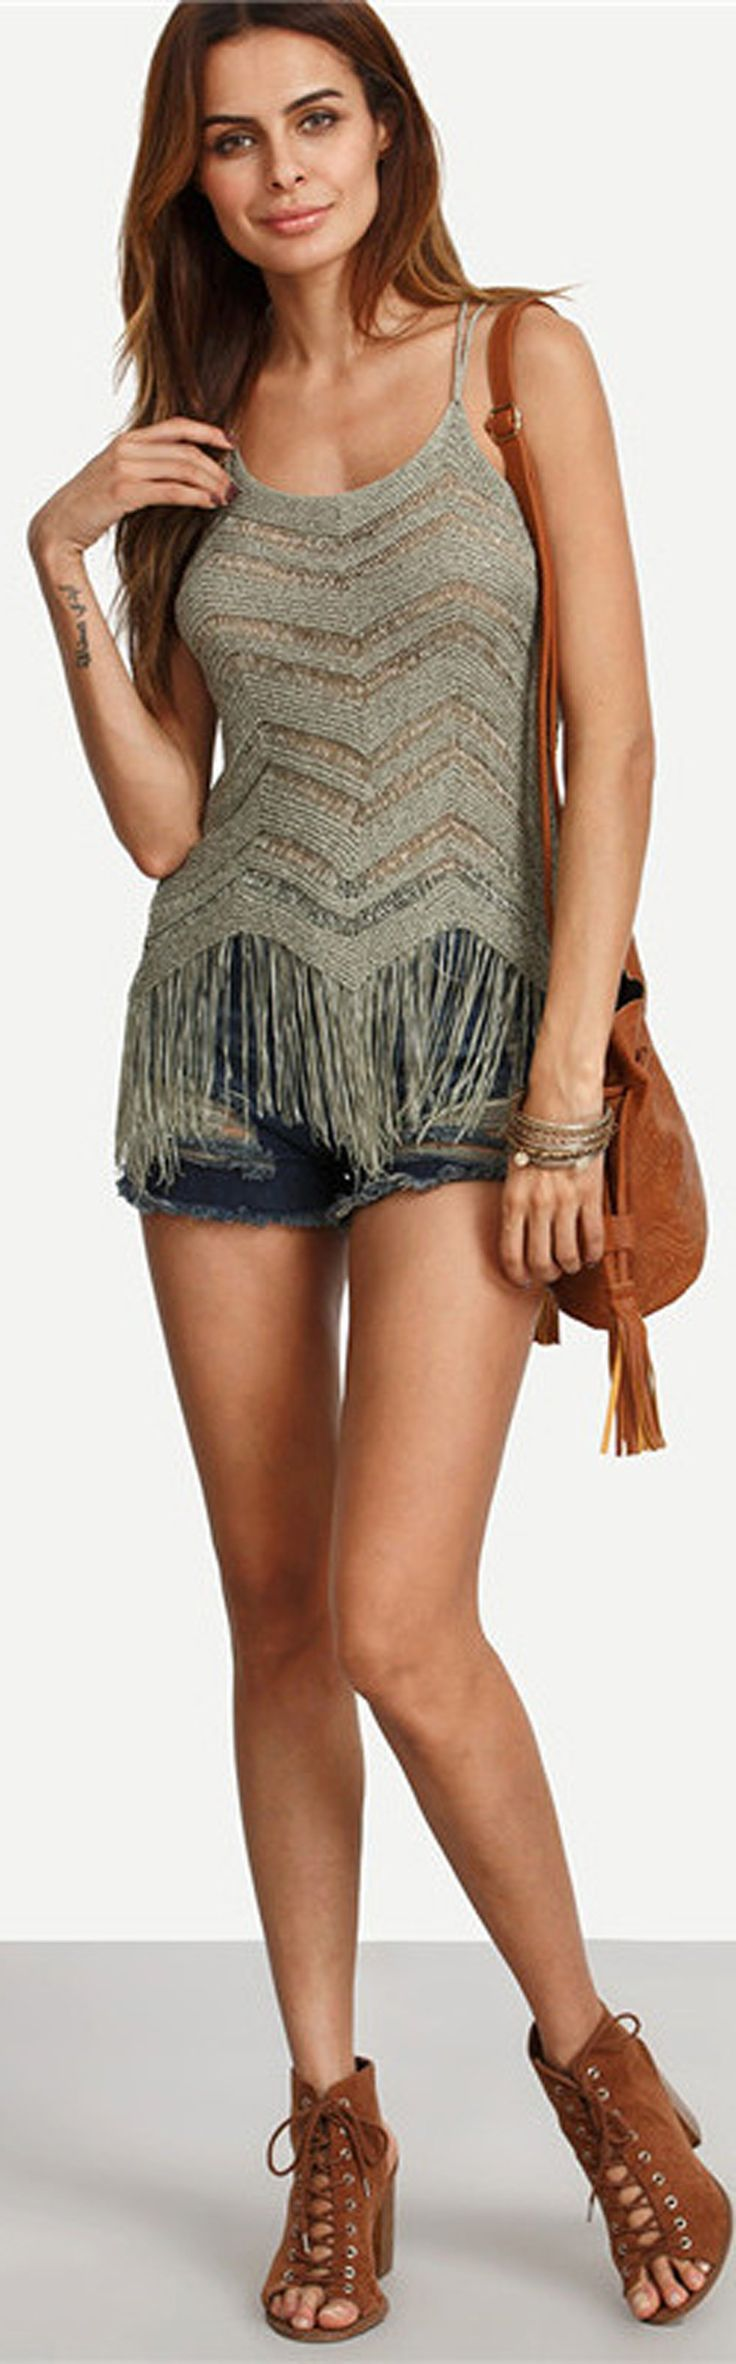 Bohemian Boho Summer Outfit Ideas for Teen Girls Cute Crotchet Spaghetti Top Tassels with Jean Shorts -  ideas lindas del equipo del verano para las muchachas adolescentes - www.GlamantiBeauty.com